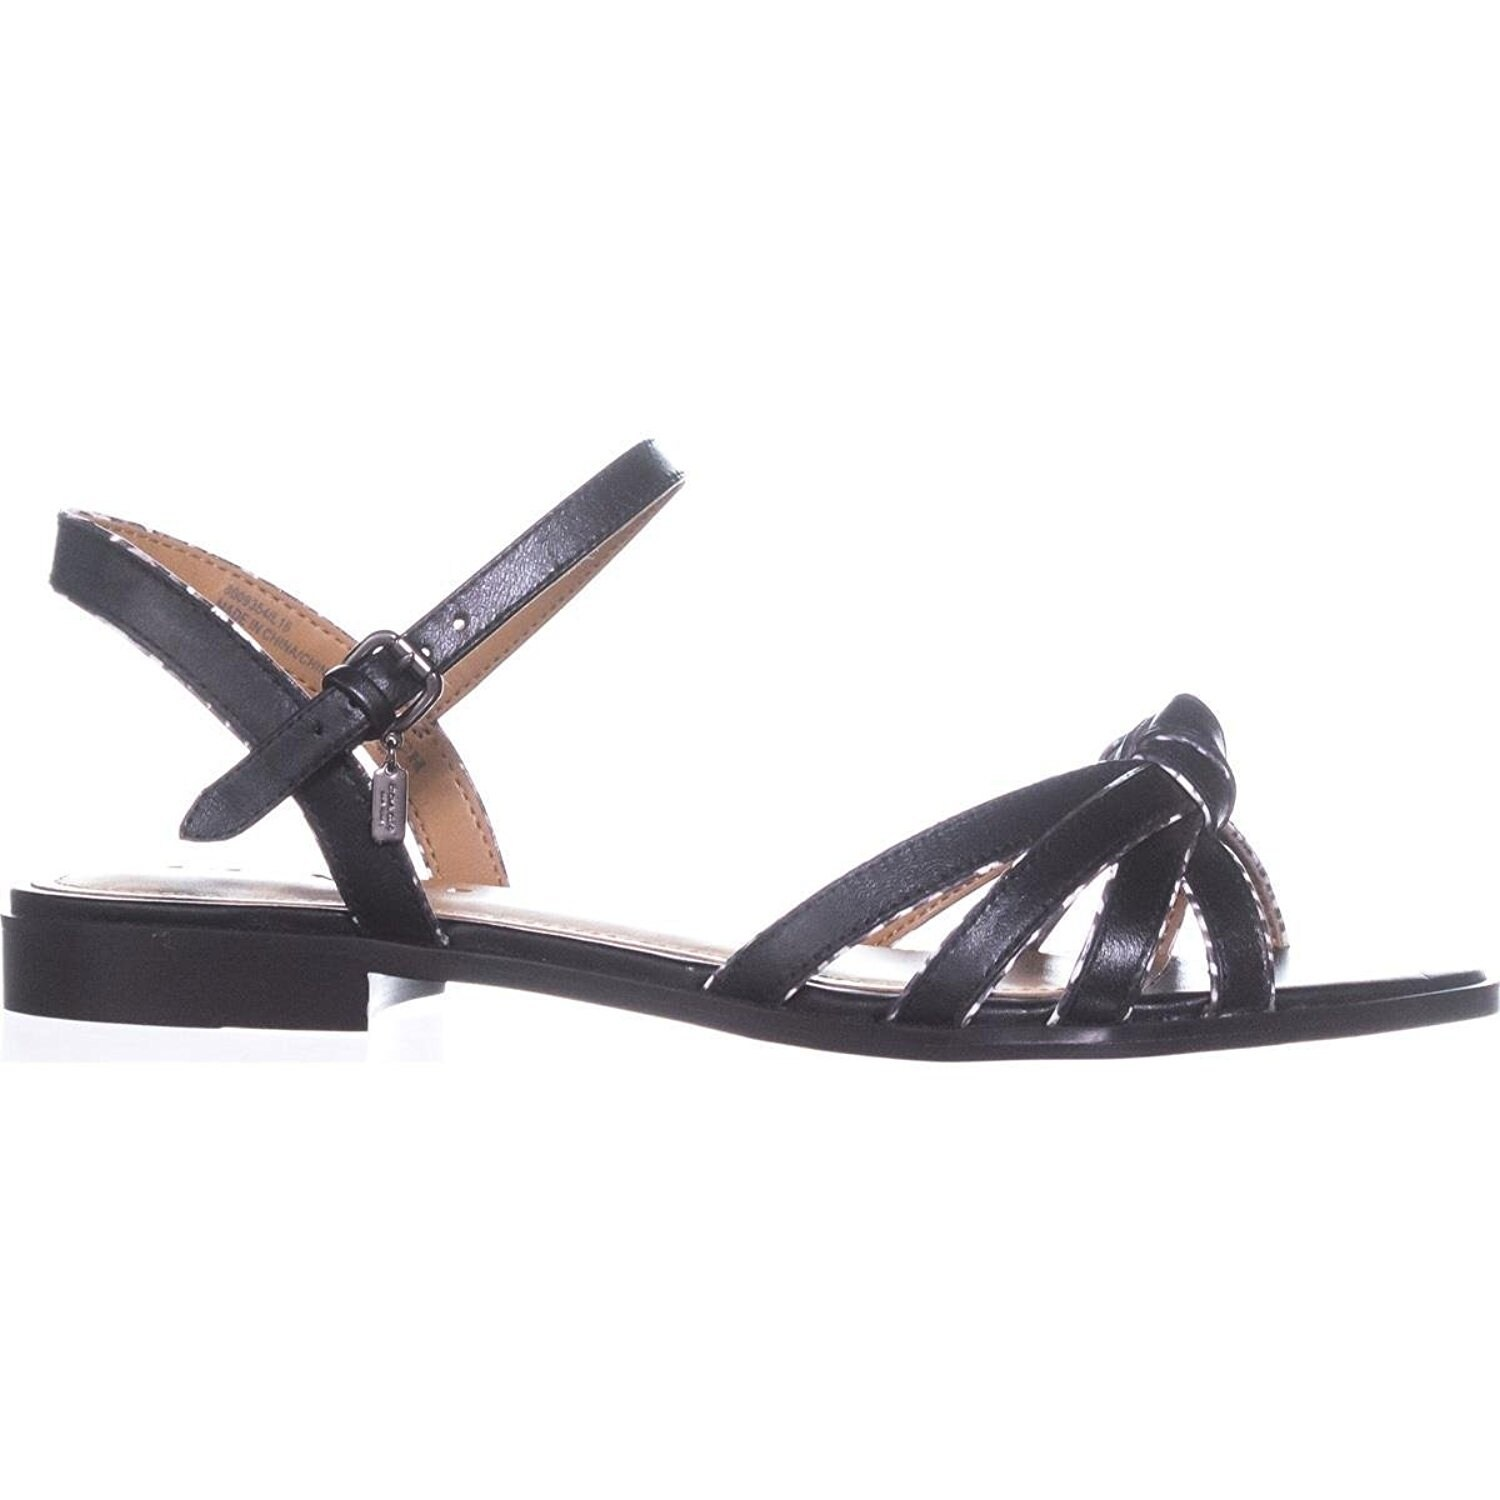 f712a07e28f Shop Coach Womens Sophia Open Toe Casual Strappy Sandals - Free Shipping  Today - Overstock - 19833952